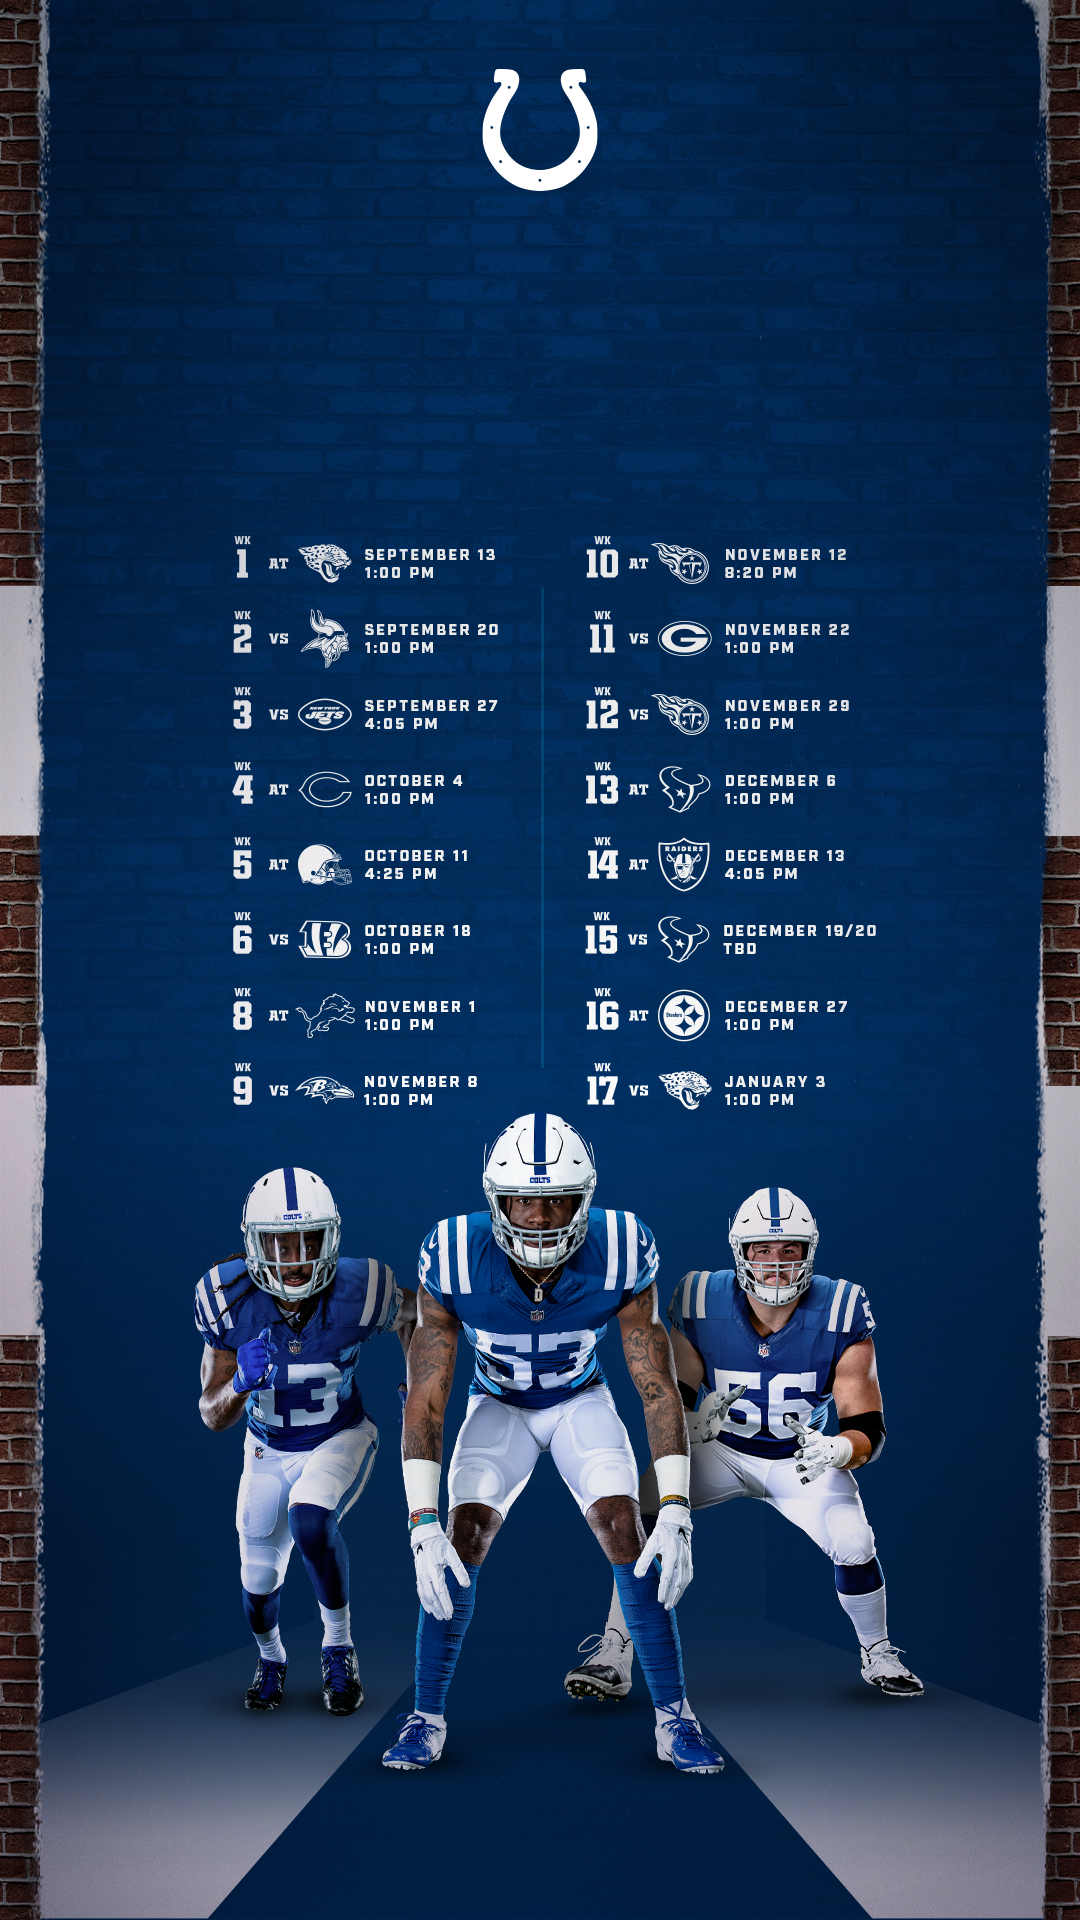 Colts Schedule | Indianapolis Colts - Colts with regard to Printable Nfl Schedule For 2020 2021